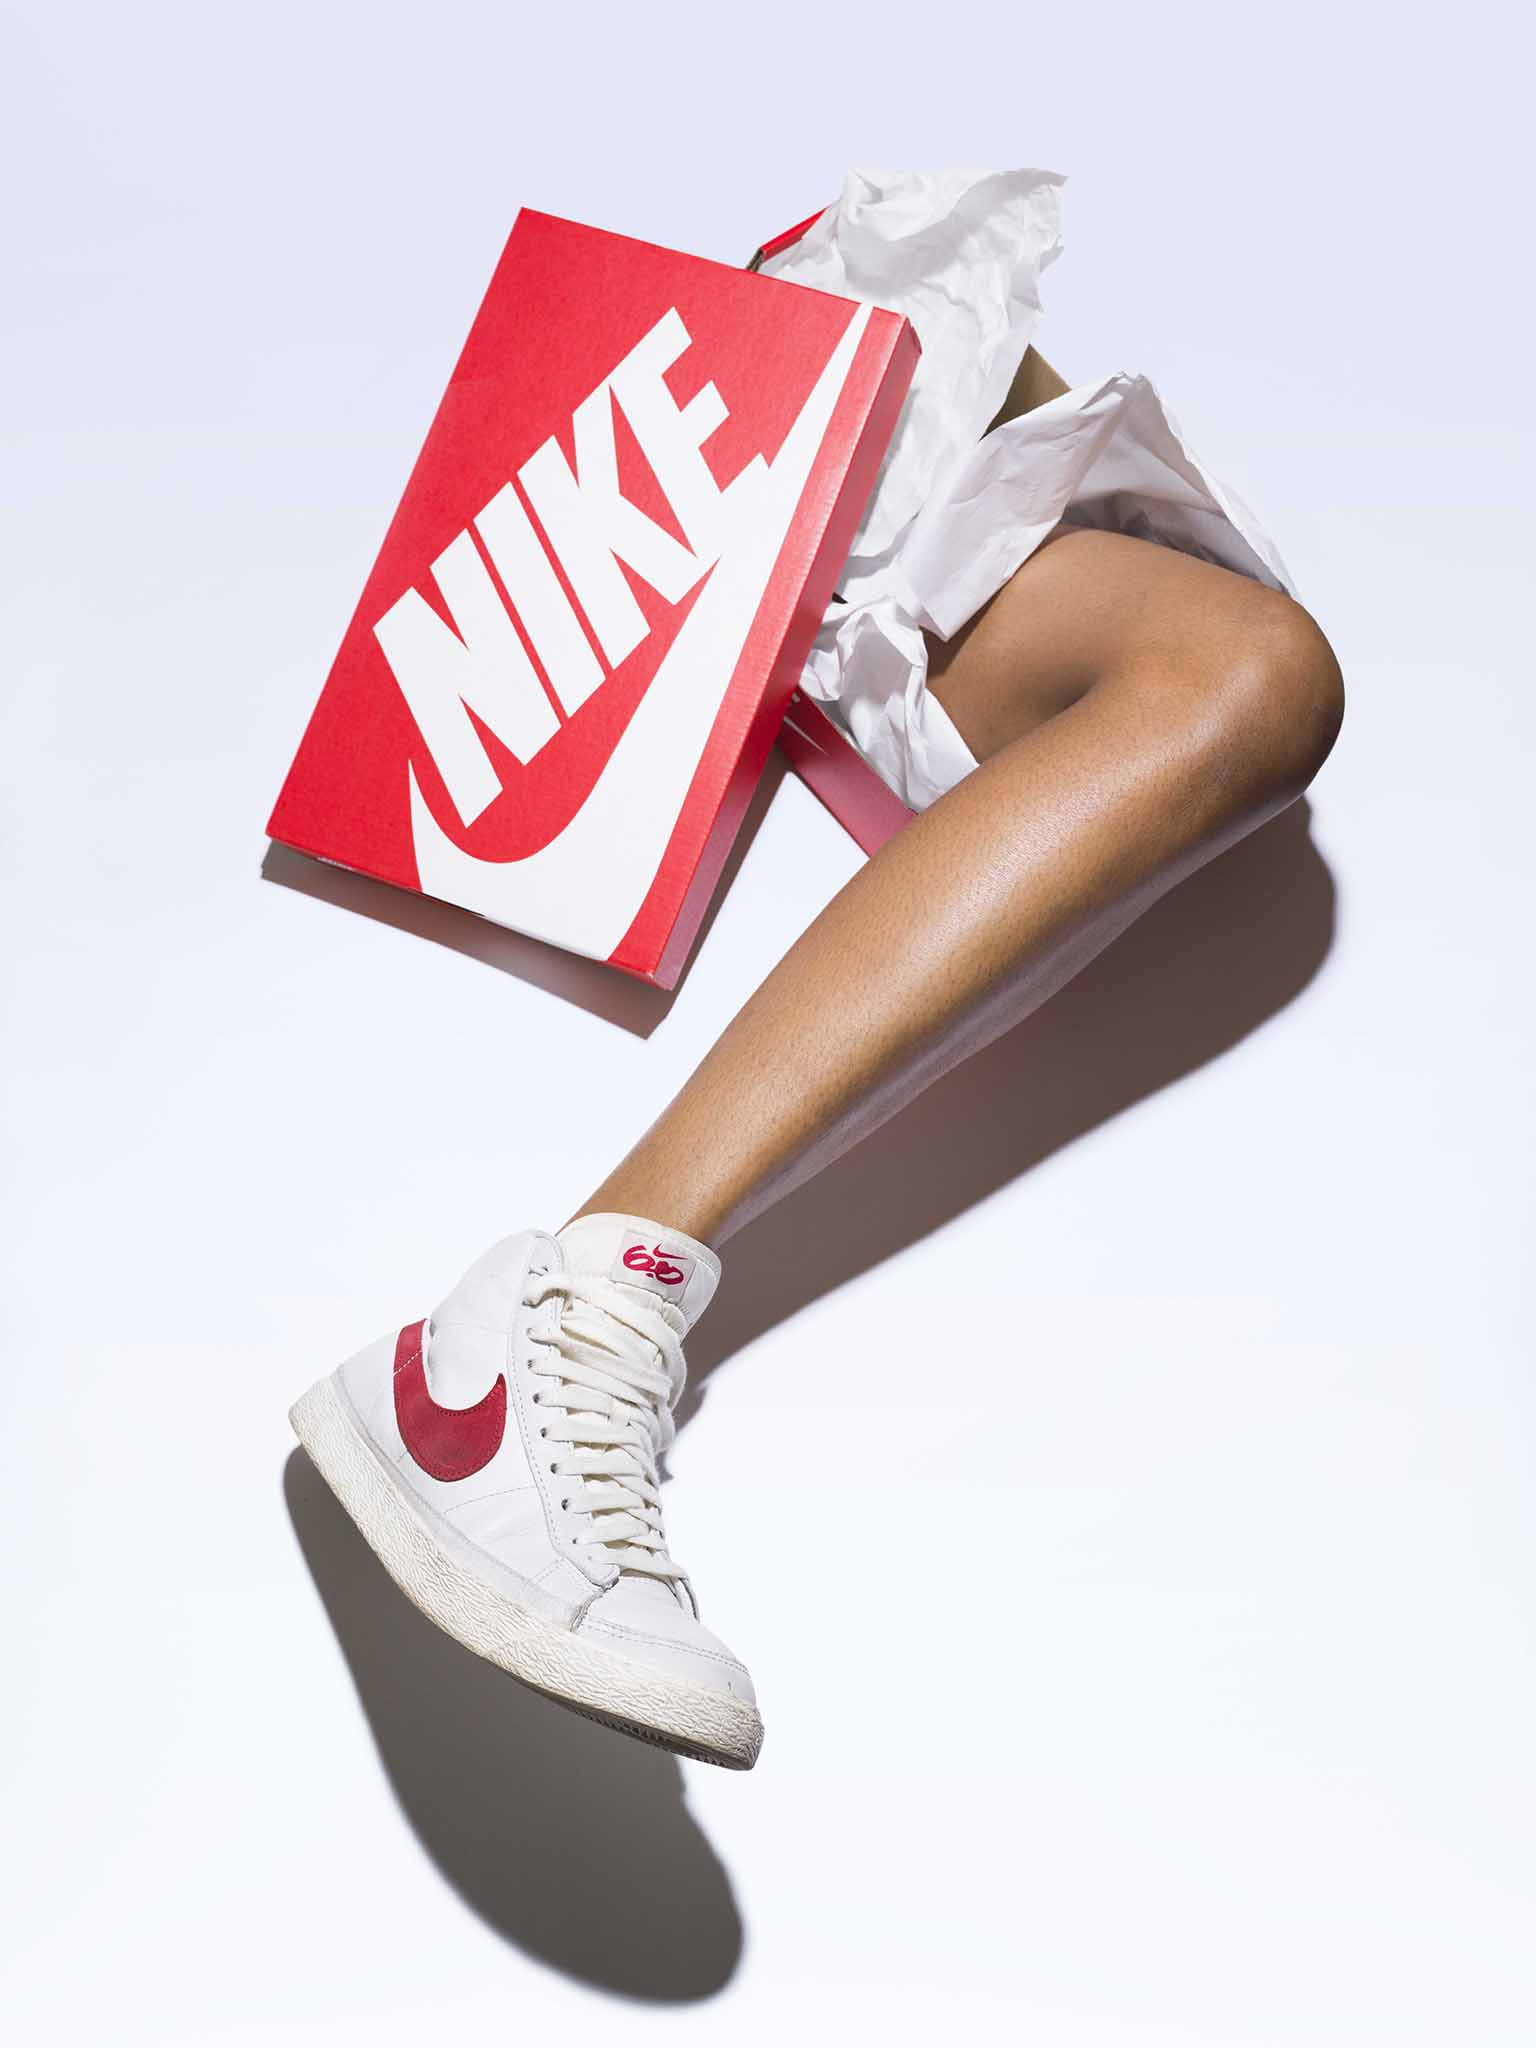 Leg with a white nike sneaker on